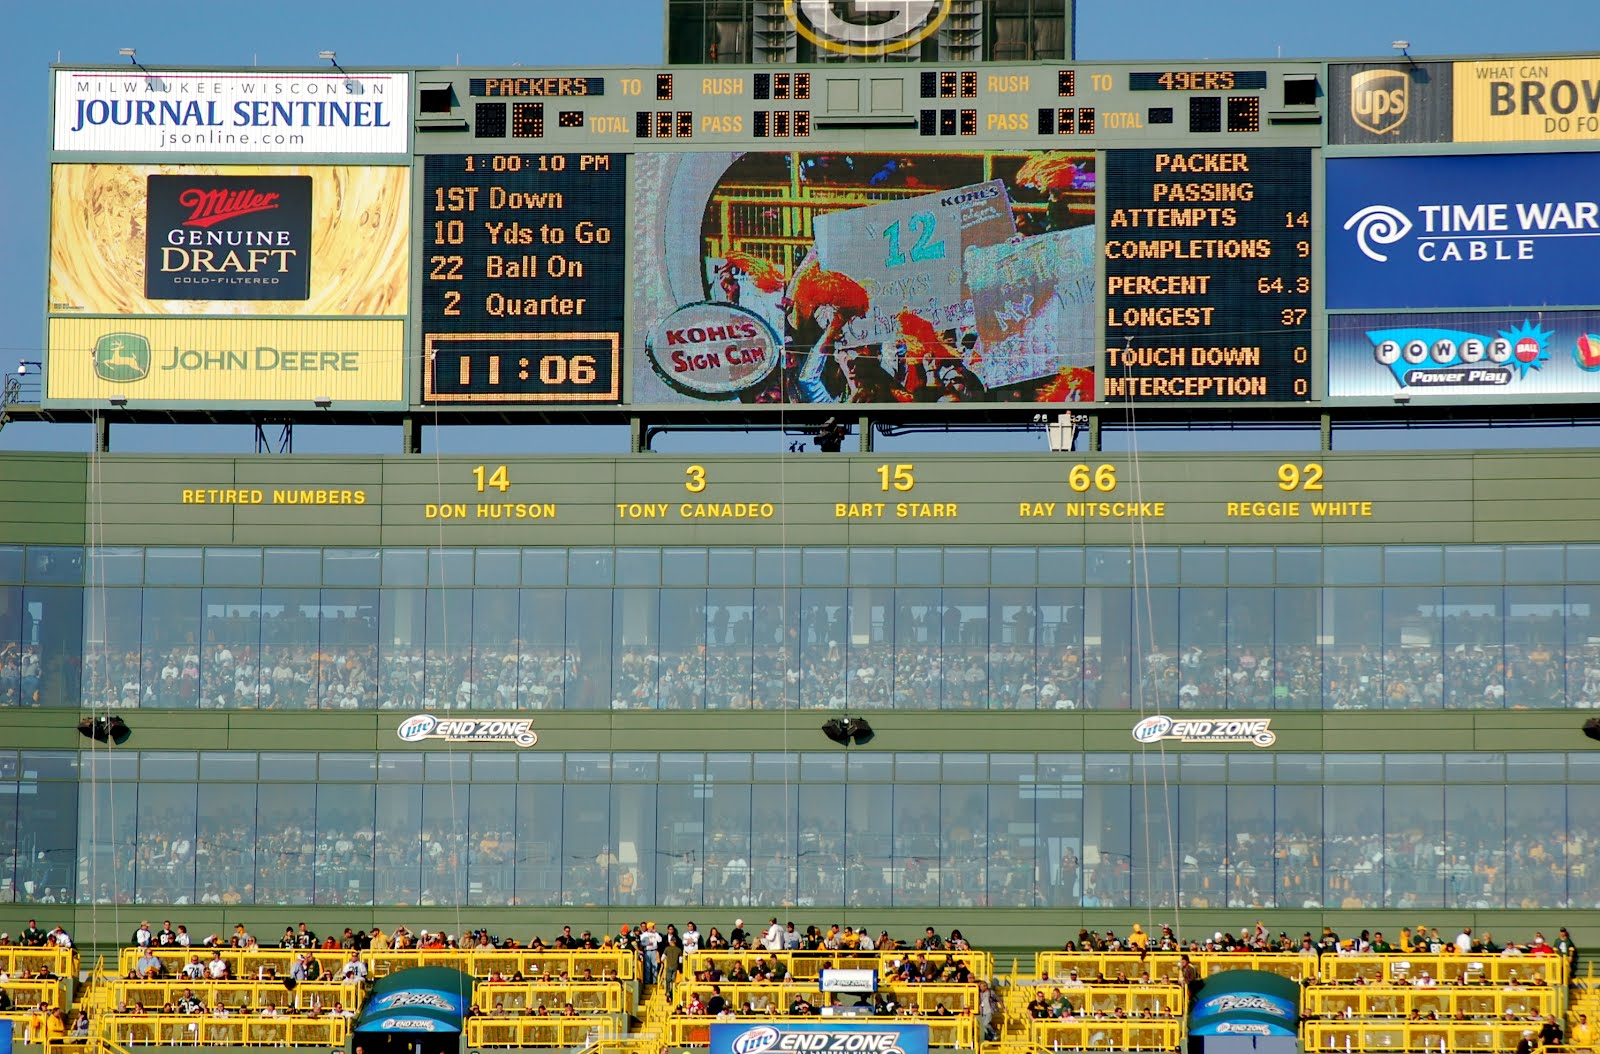 Lambeau Field Retired Numbers (not including Brett Favre)